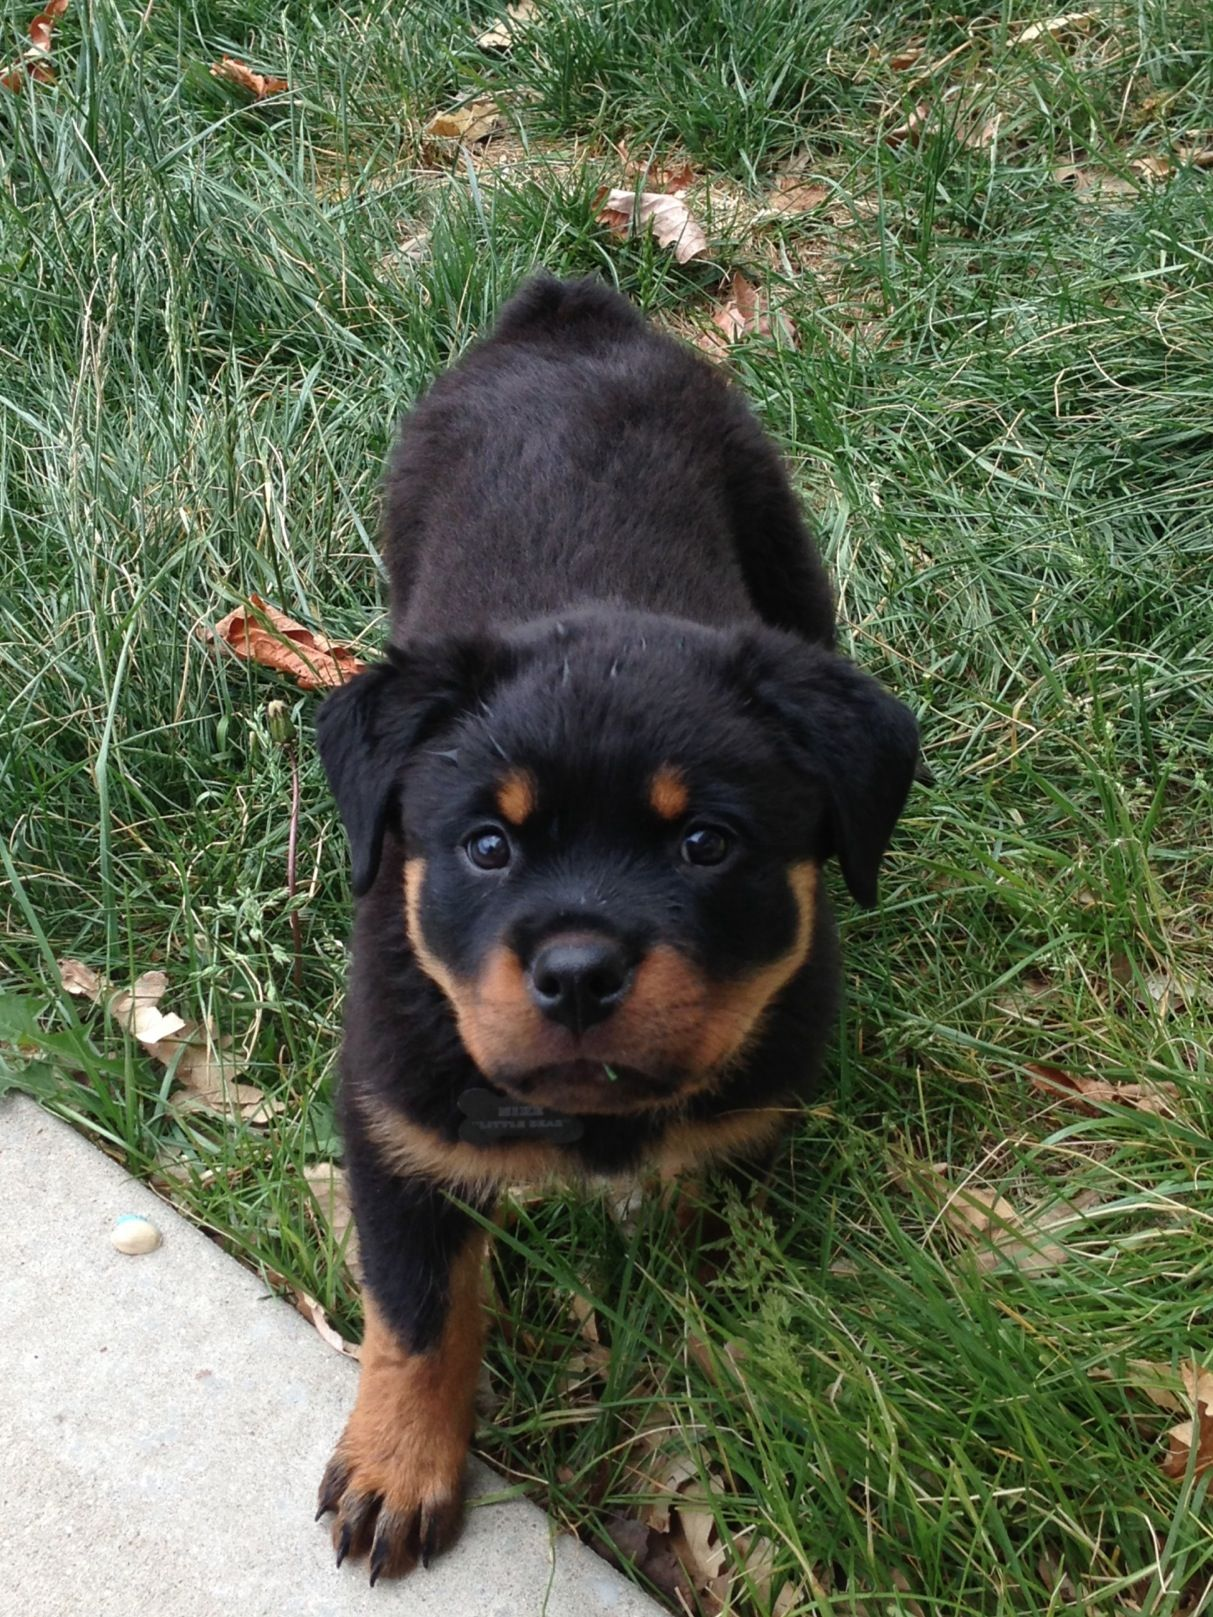 Baby Rottweiler So Cute I Want One Baby Rottweiler